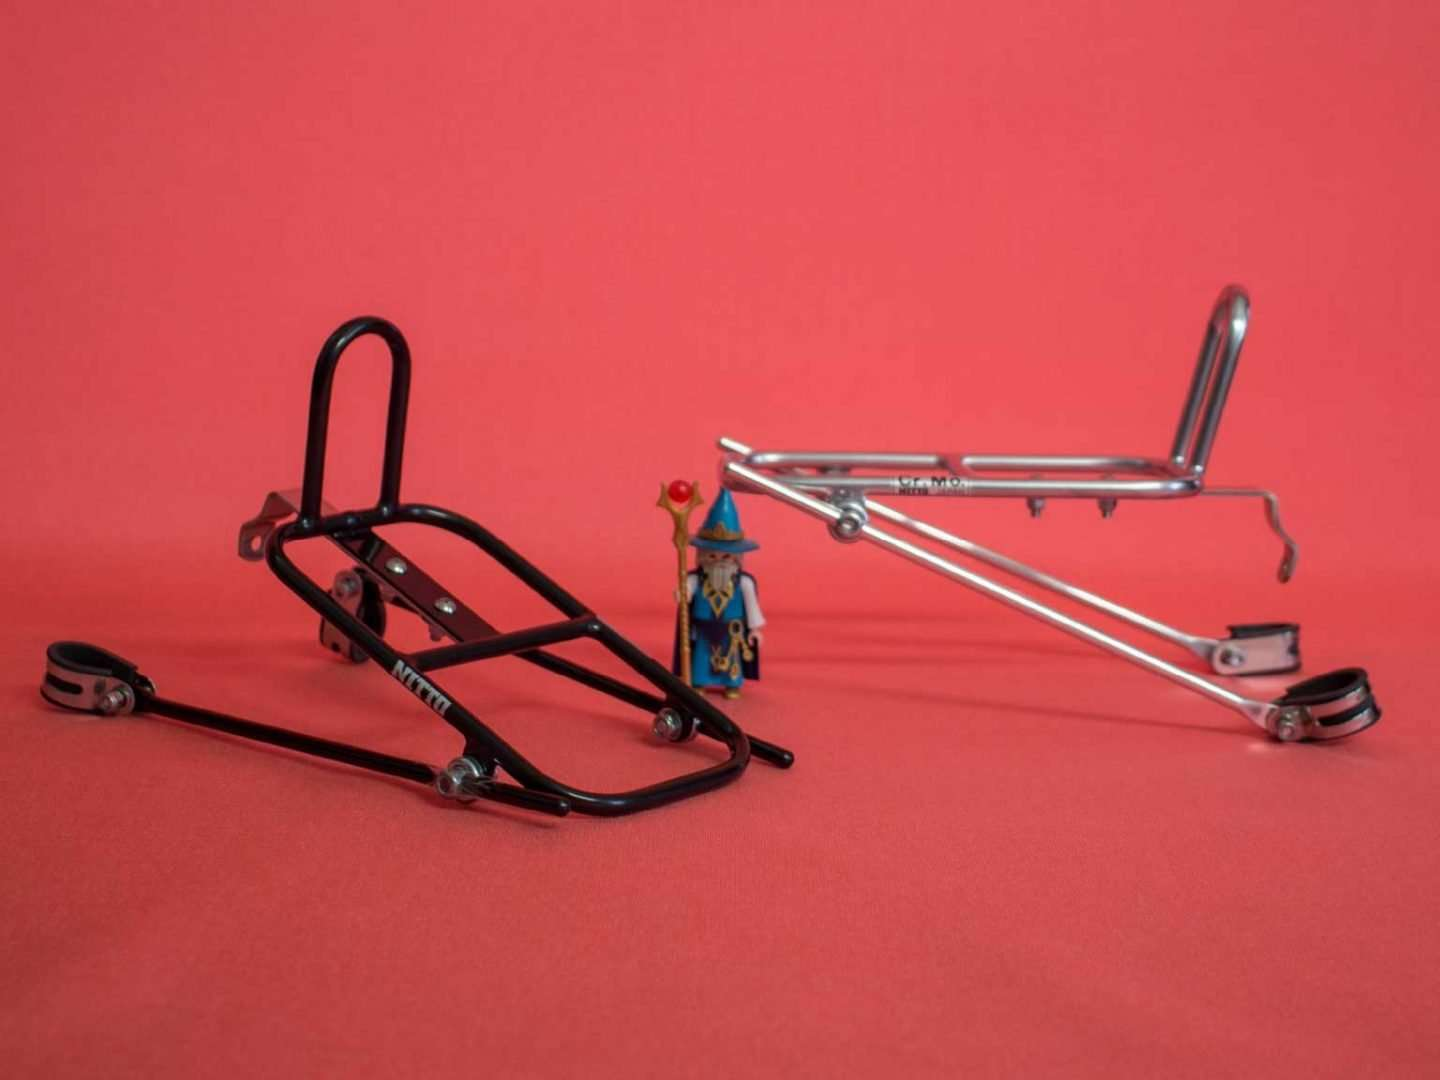 Nitto M18 Front Rack Silver Lifestyle 1 1536px 20